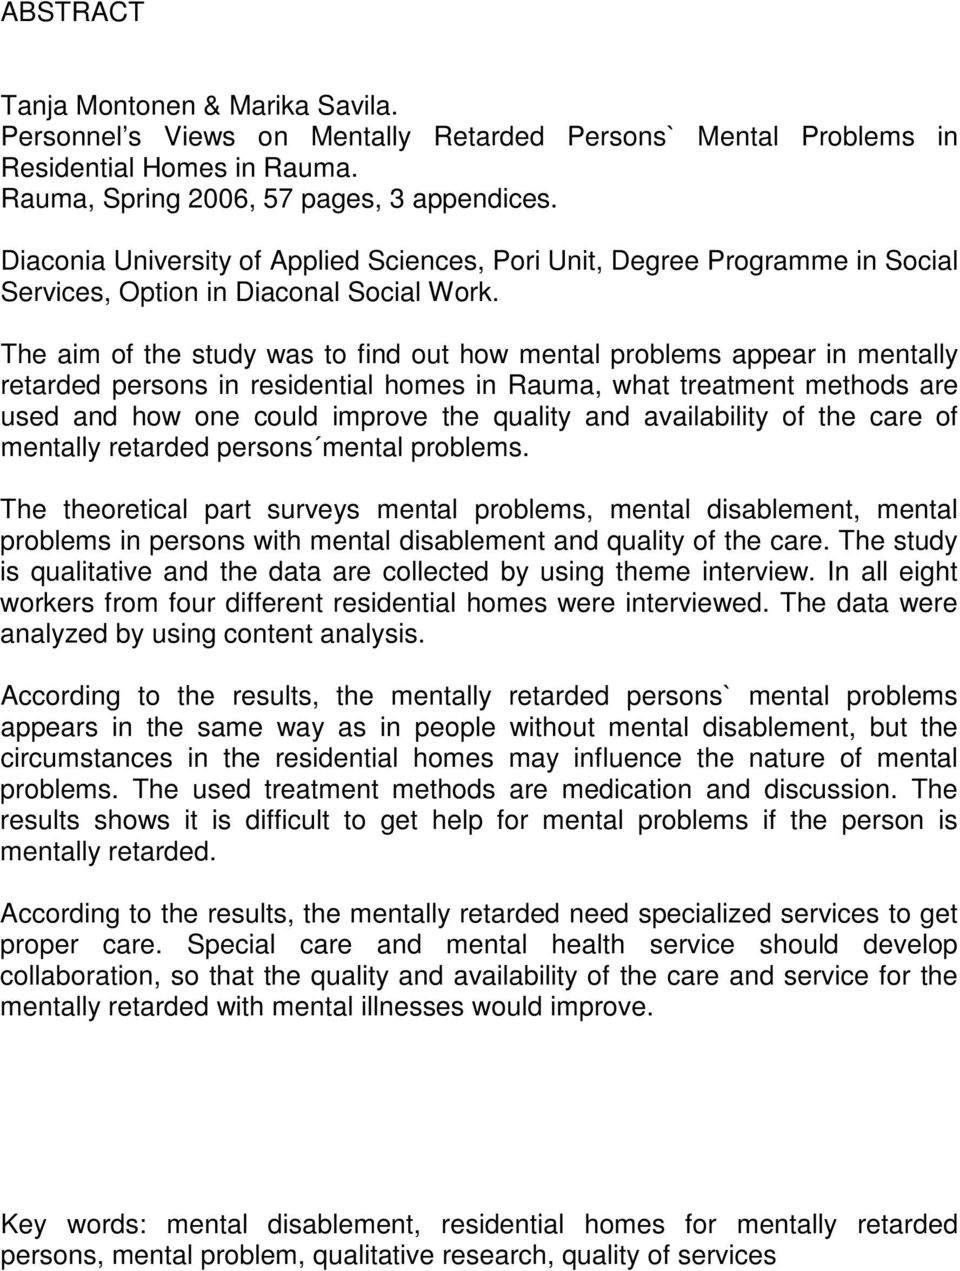 The aim of the study was to find out how mental problems appear in mentally retarded persons in residential homes in Rauma, what treatment methods are used and how one could improve the quality and